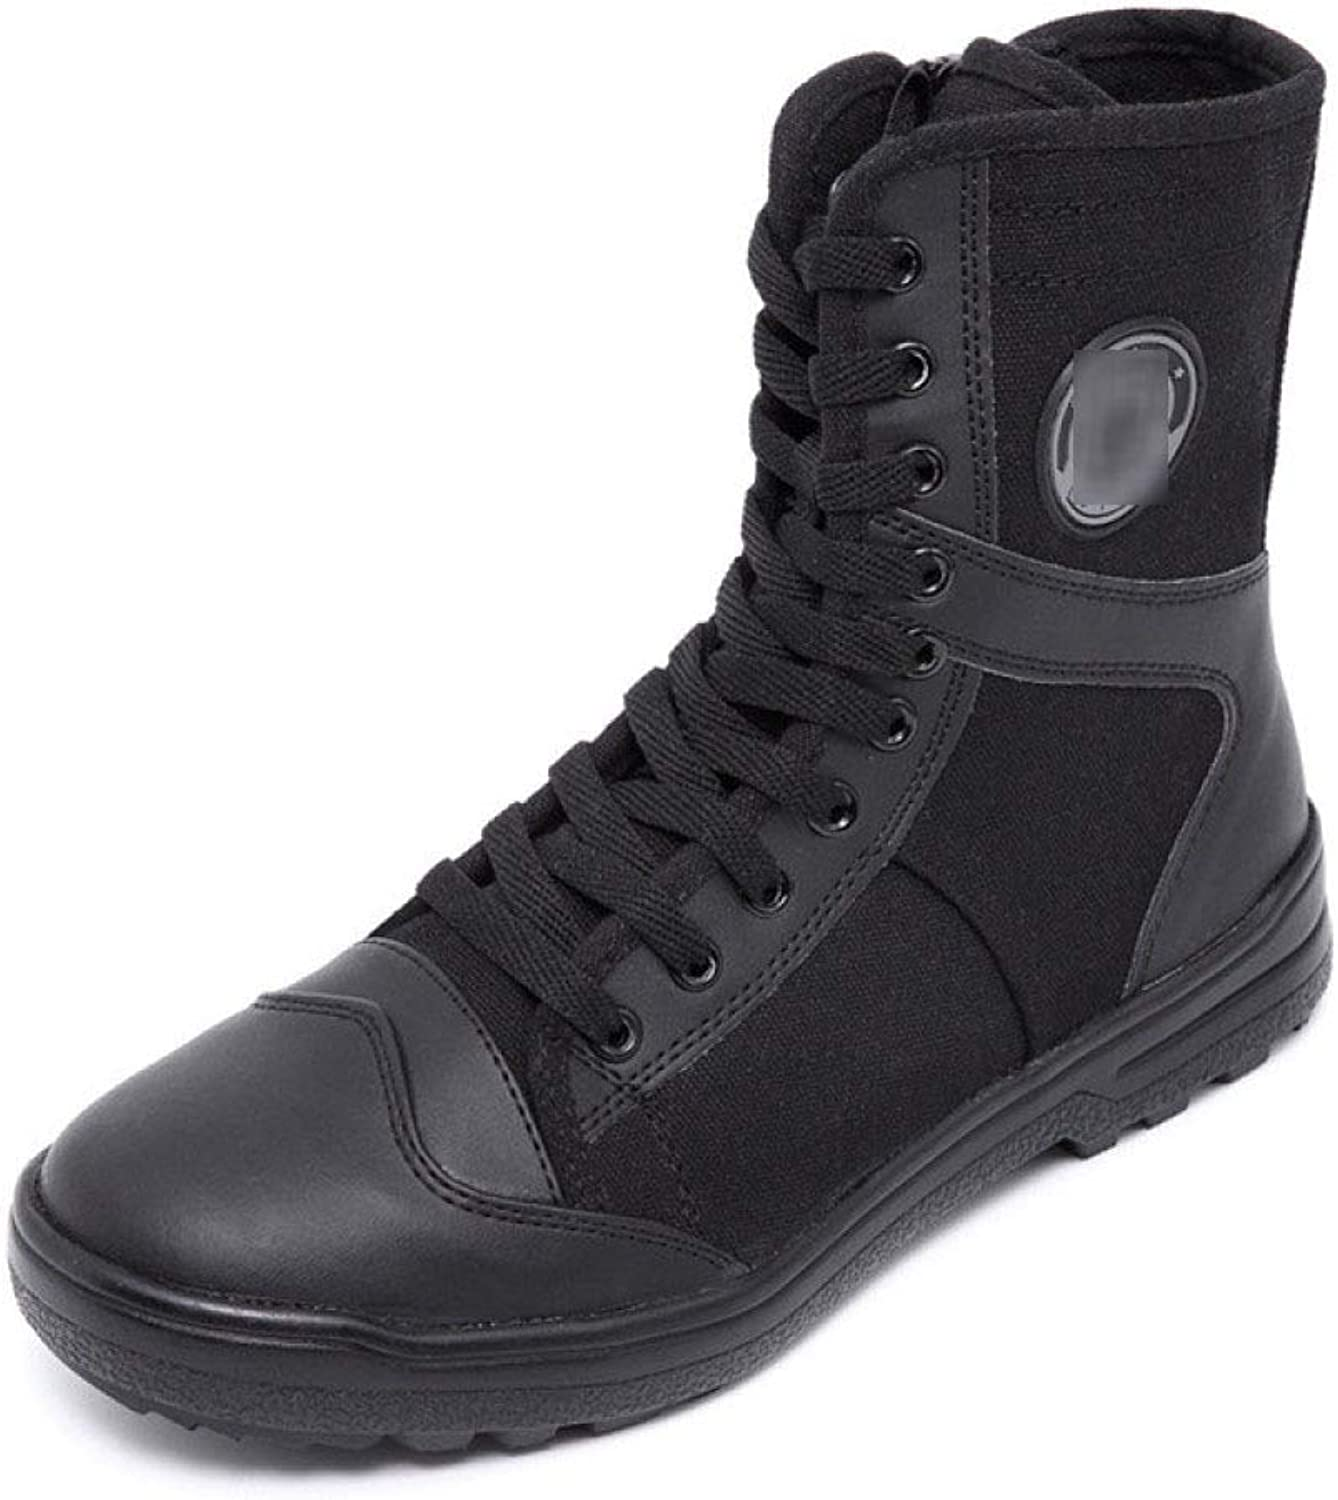 QIKAI Tactical Boots Zip Outdoor High-top Training Boots Desert Jungle Hiking Boots Special Forces Tactical Boots